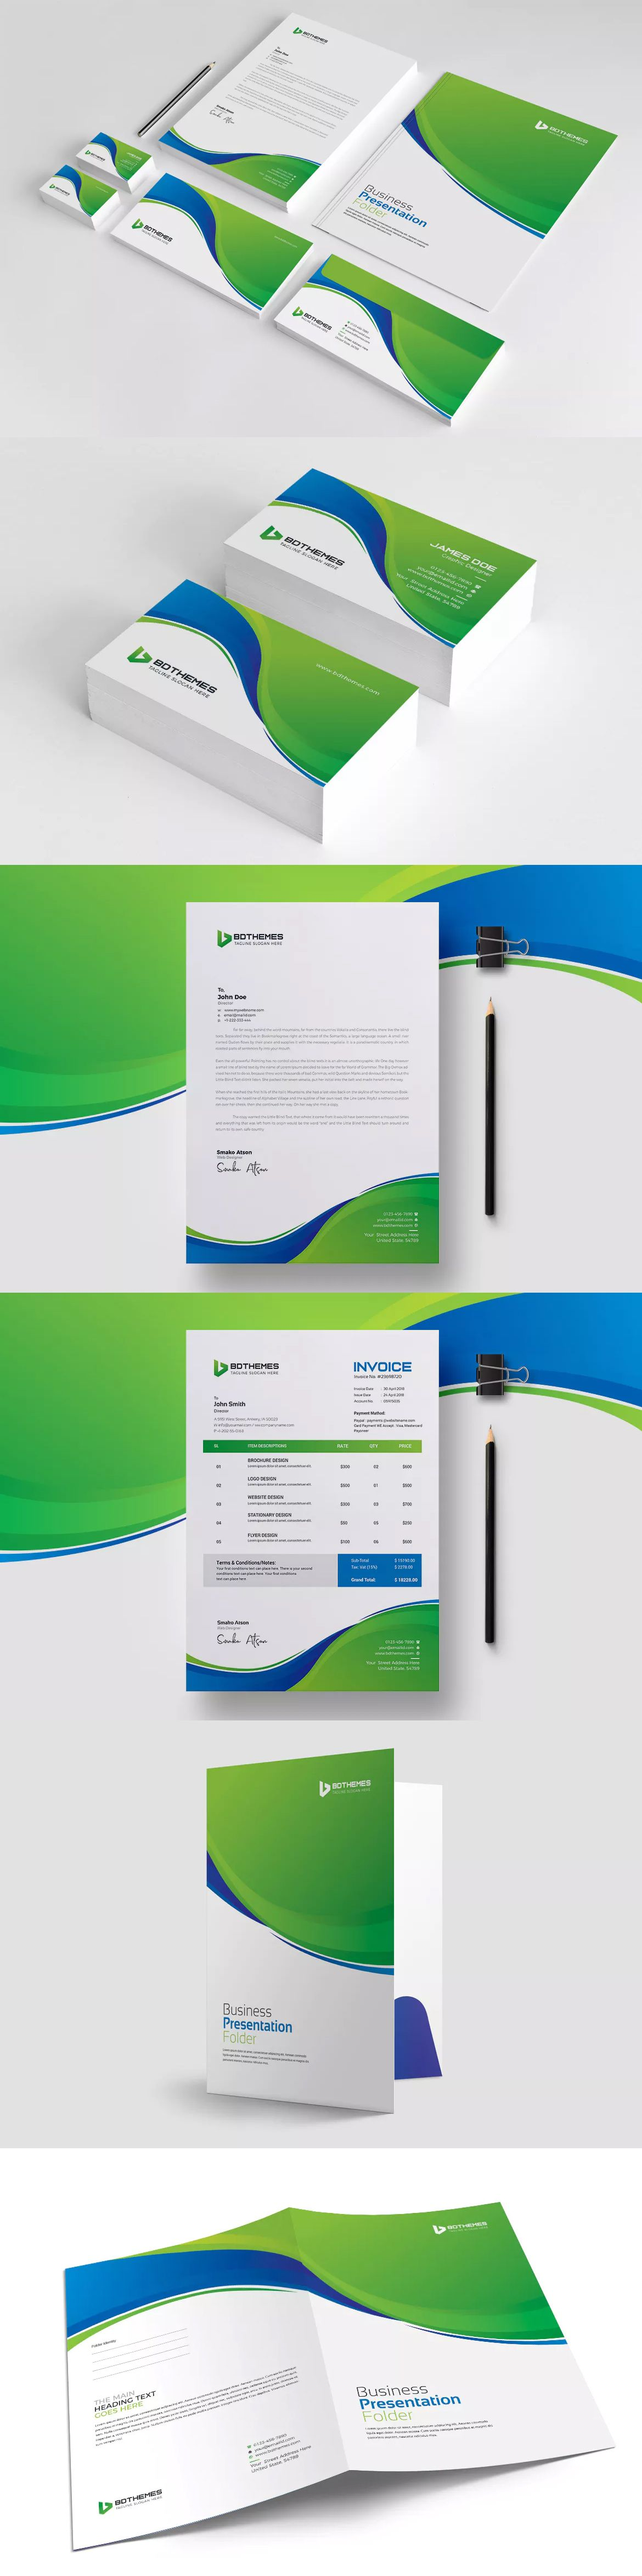 Business stationery template ai eps psd a4 us paper size business stationery template ai eps psd a4 us paper size cheaphphosting Gallery